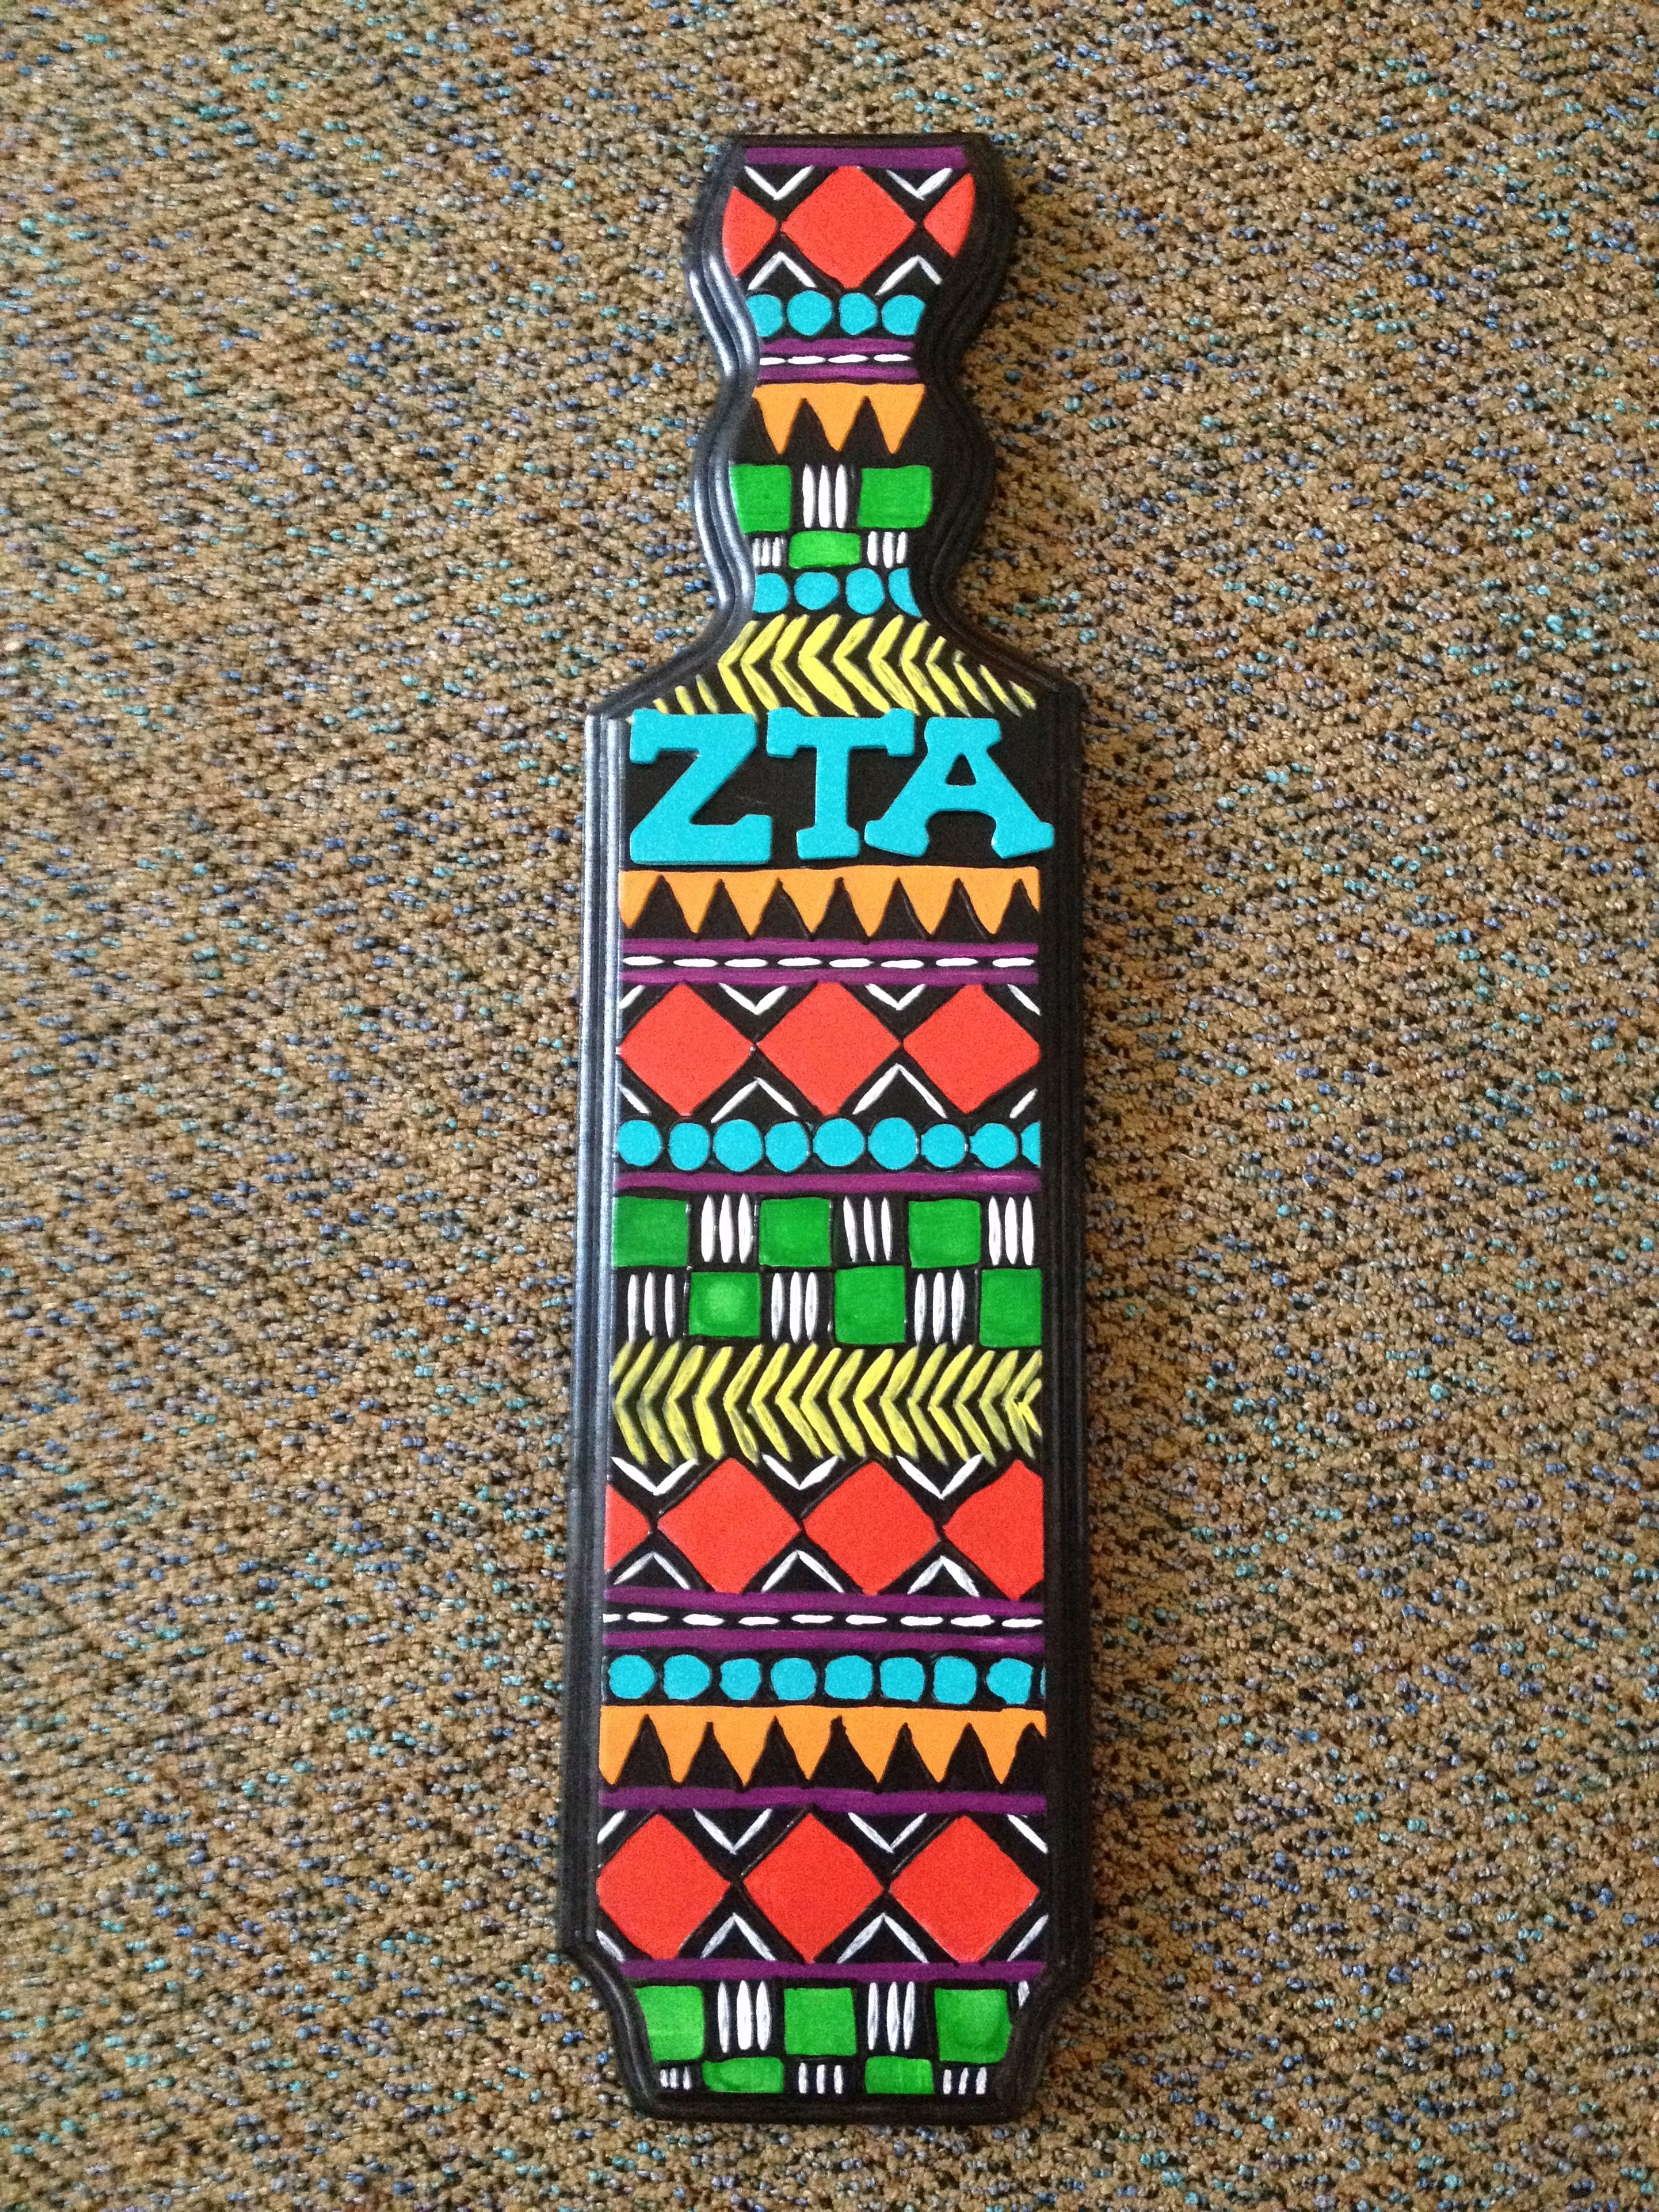 Zta tribal print big little sorority paddle diy crafty for Greek paddle template